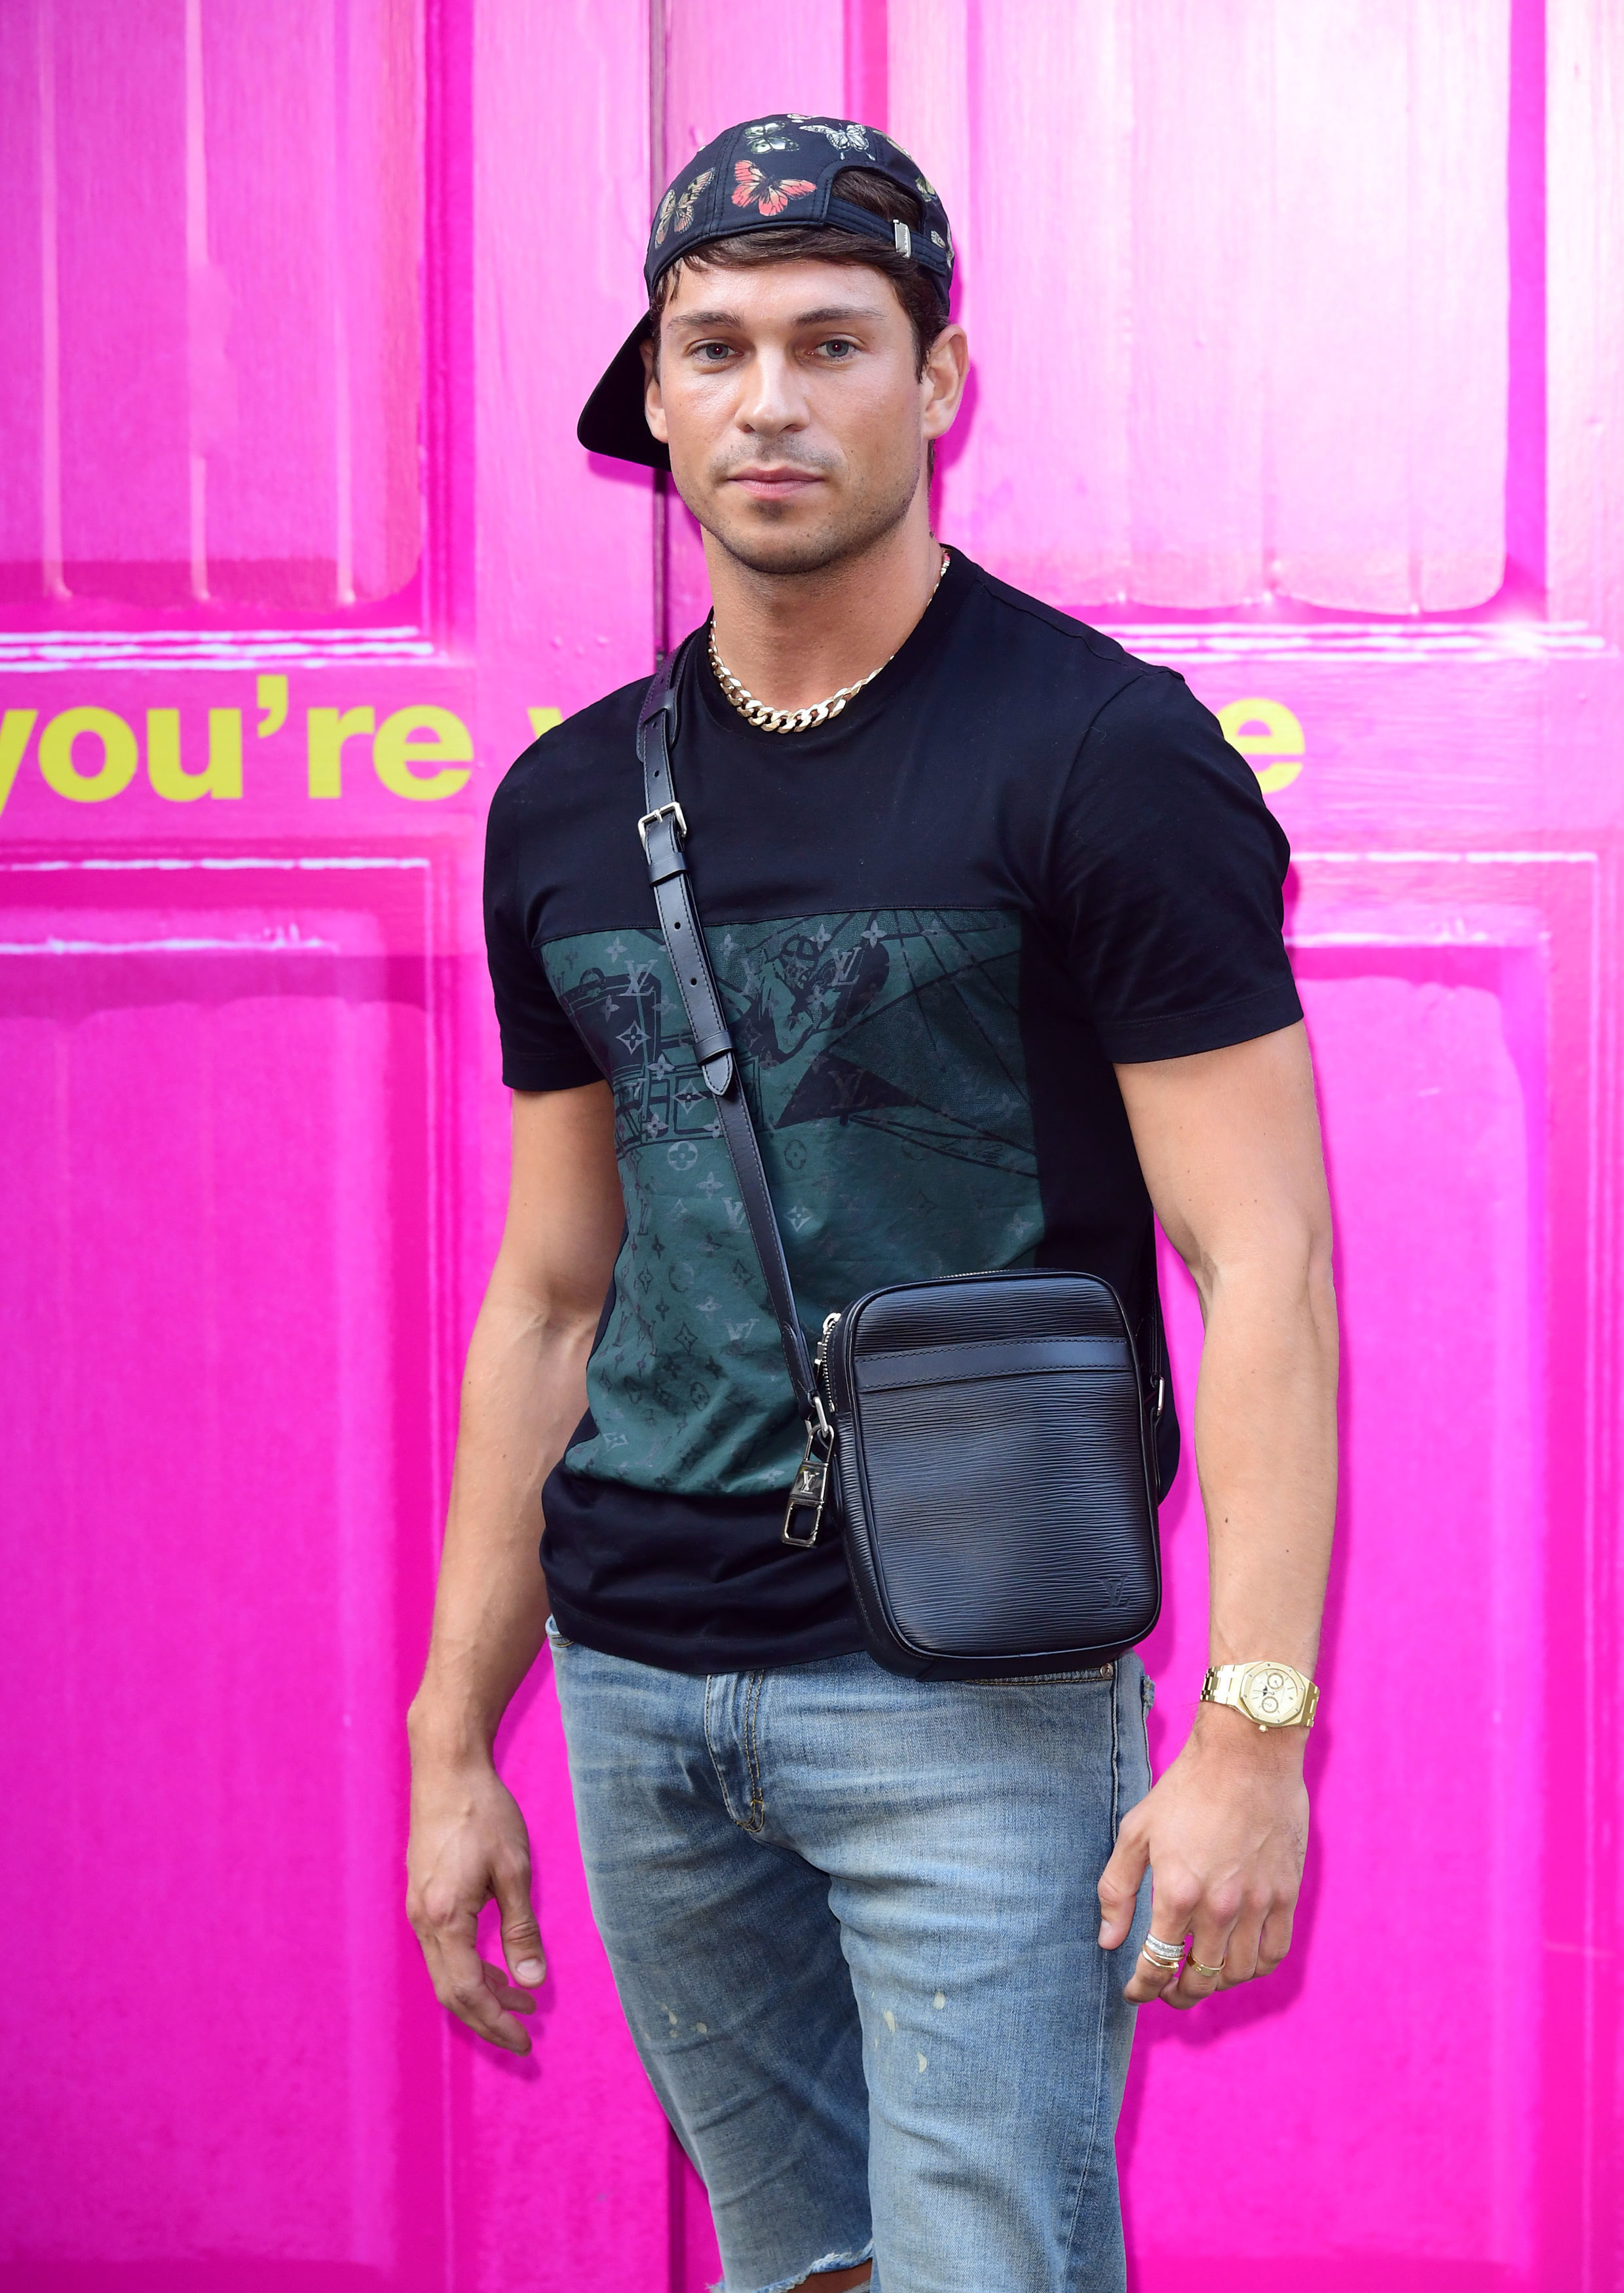 Photo of Joey Essex attending the MTV Cribs photocall at House Party, London.